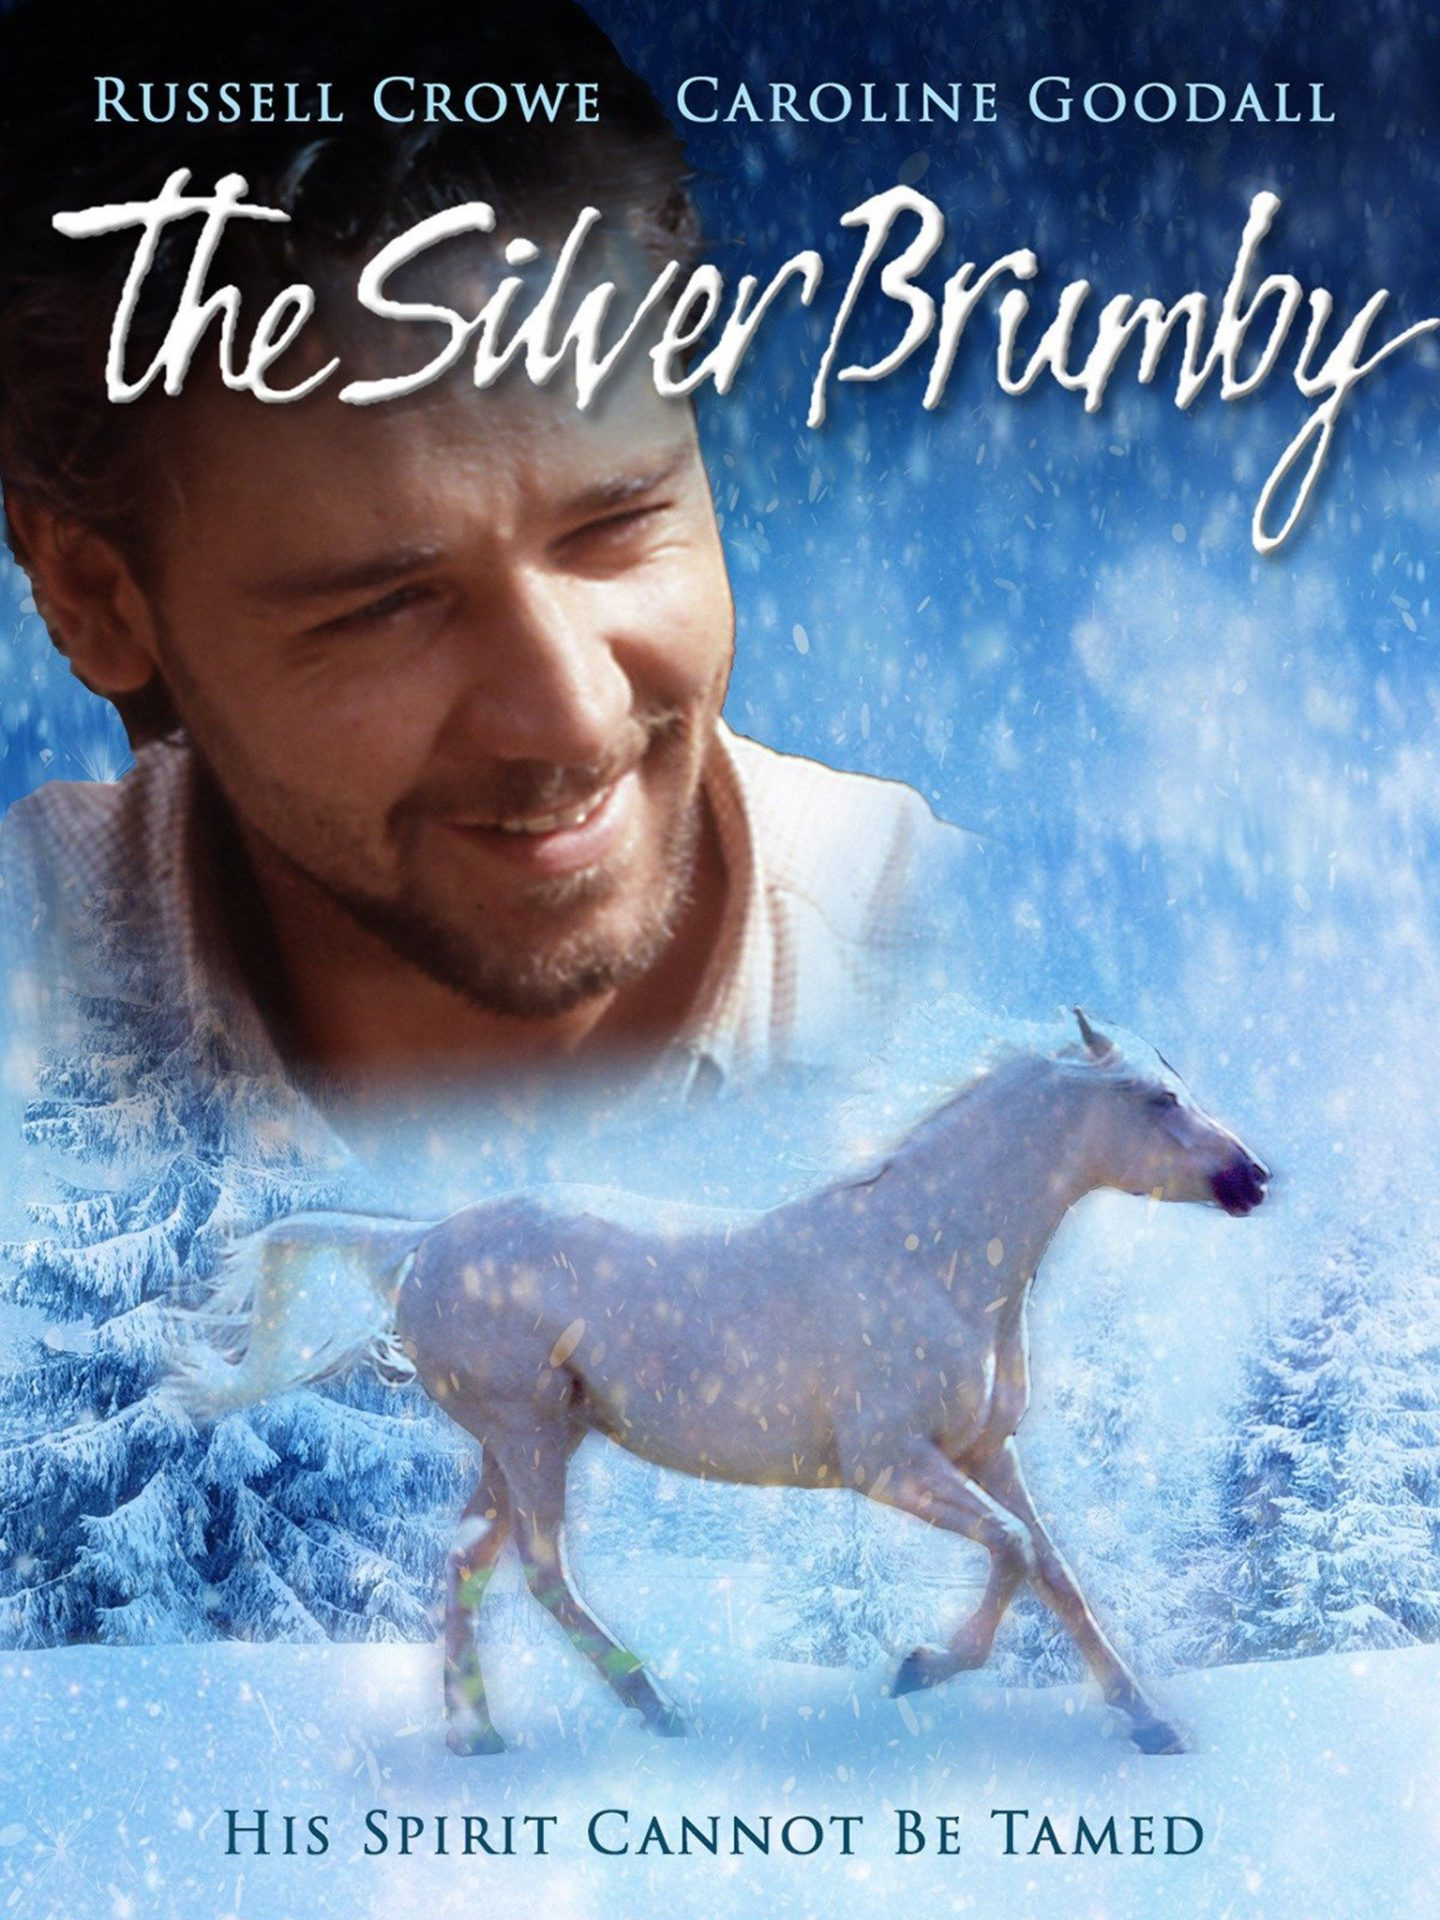 1992 The Silver Brumby